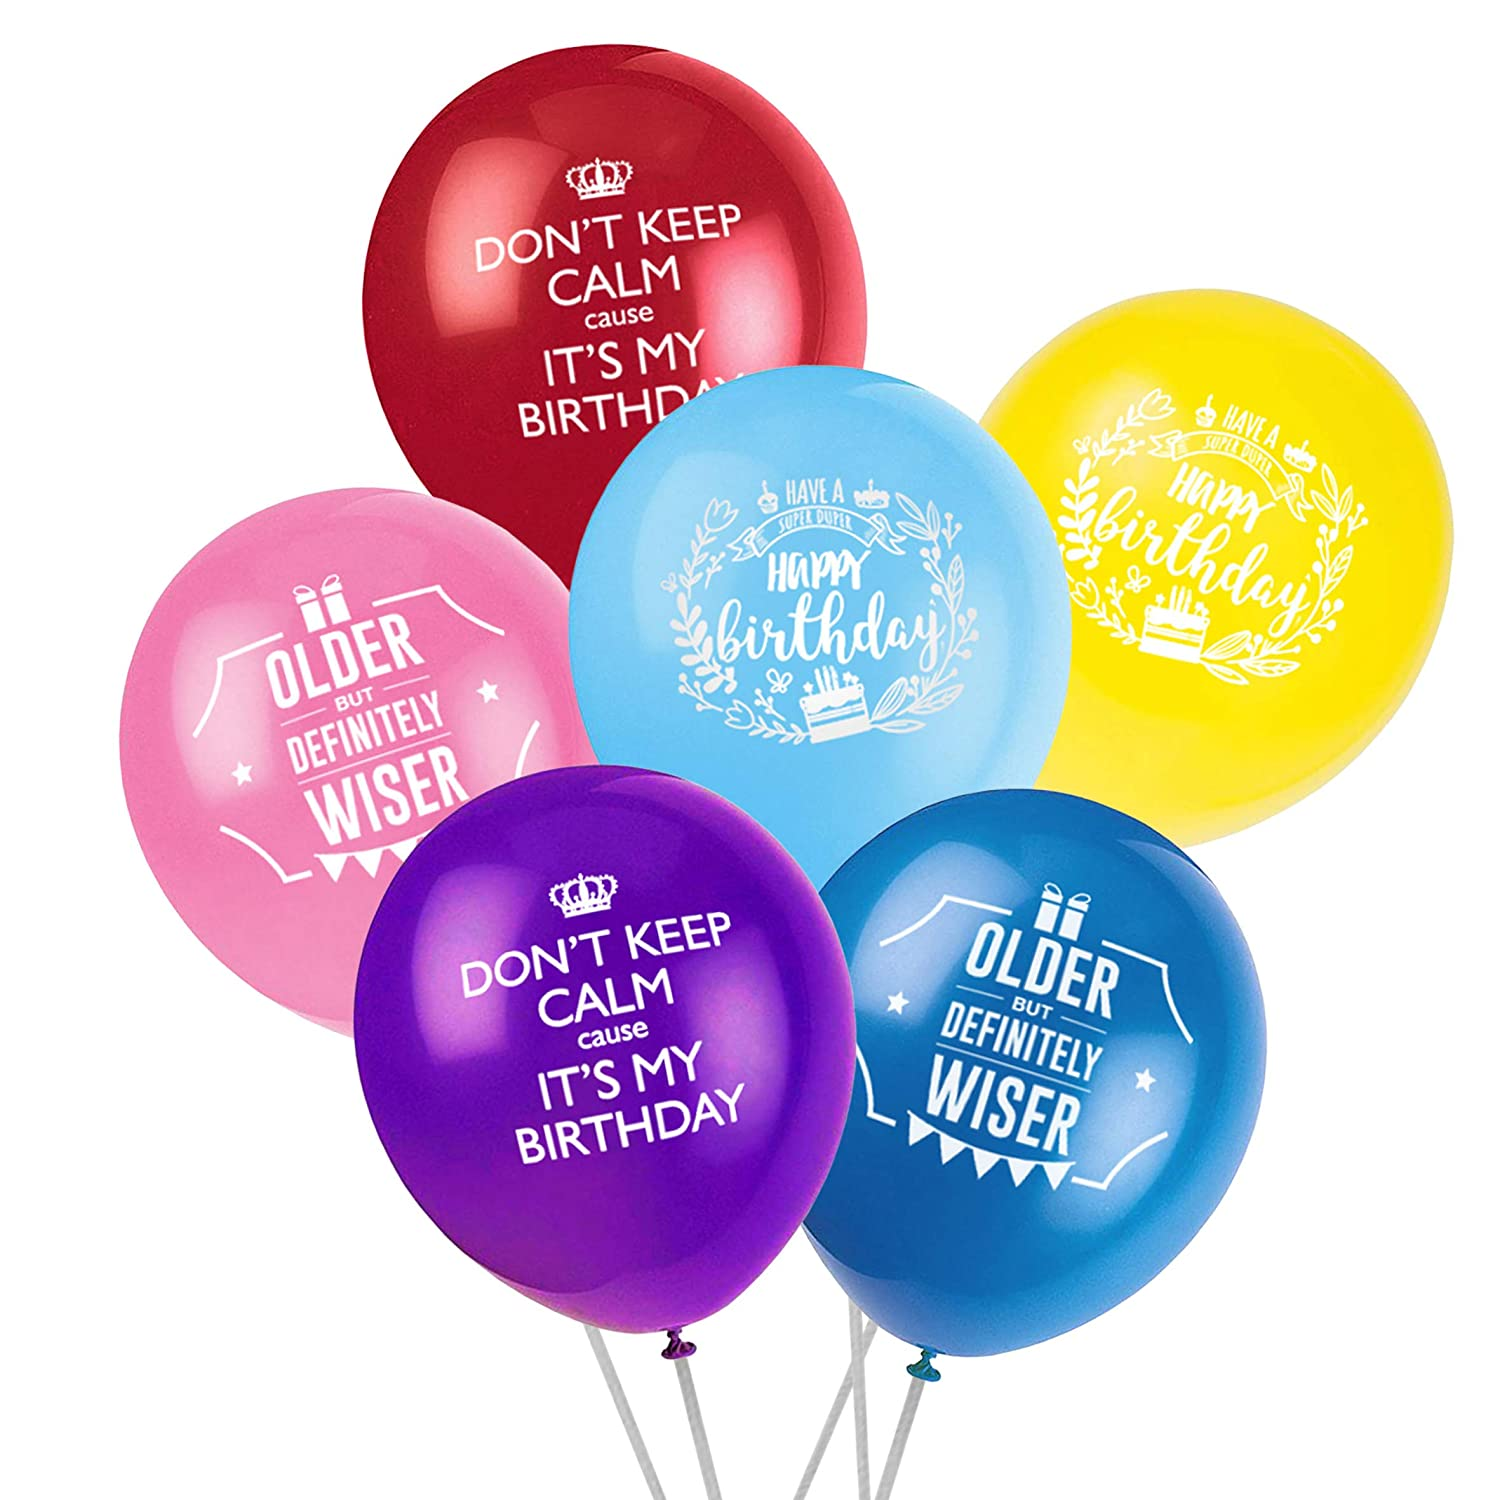 Amazon ON Sales Happy Birthday Party Balloon 60pcs 12 Inches Thick And High Quality